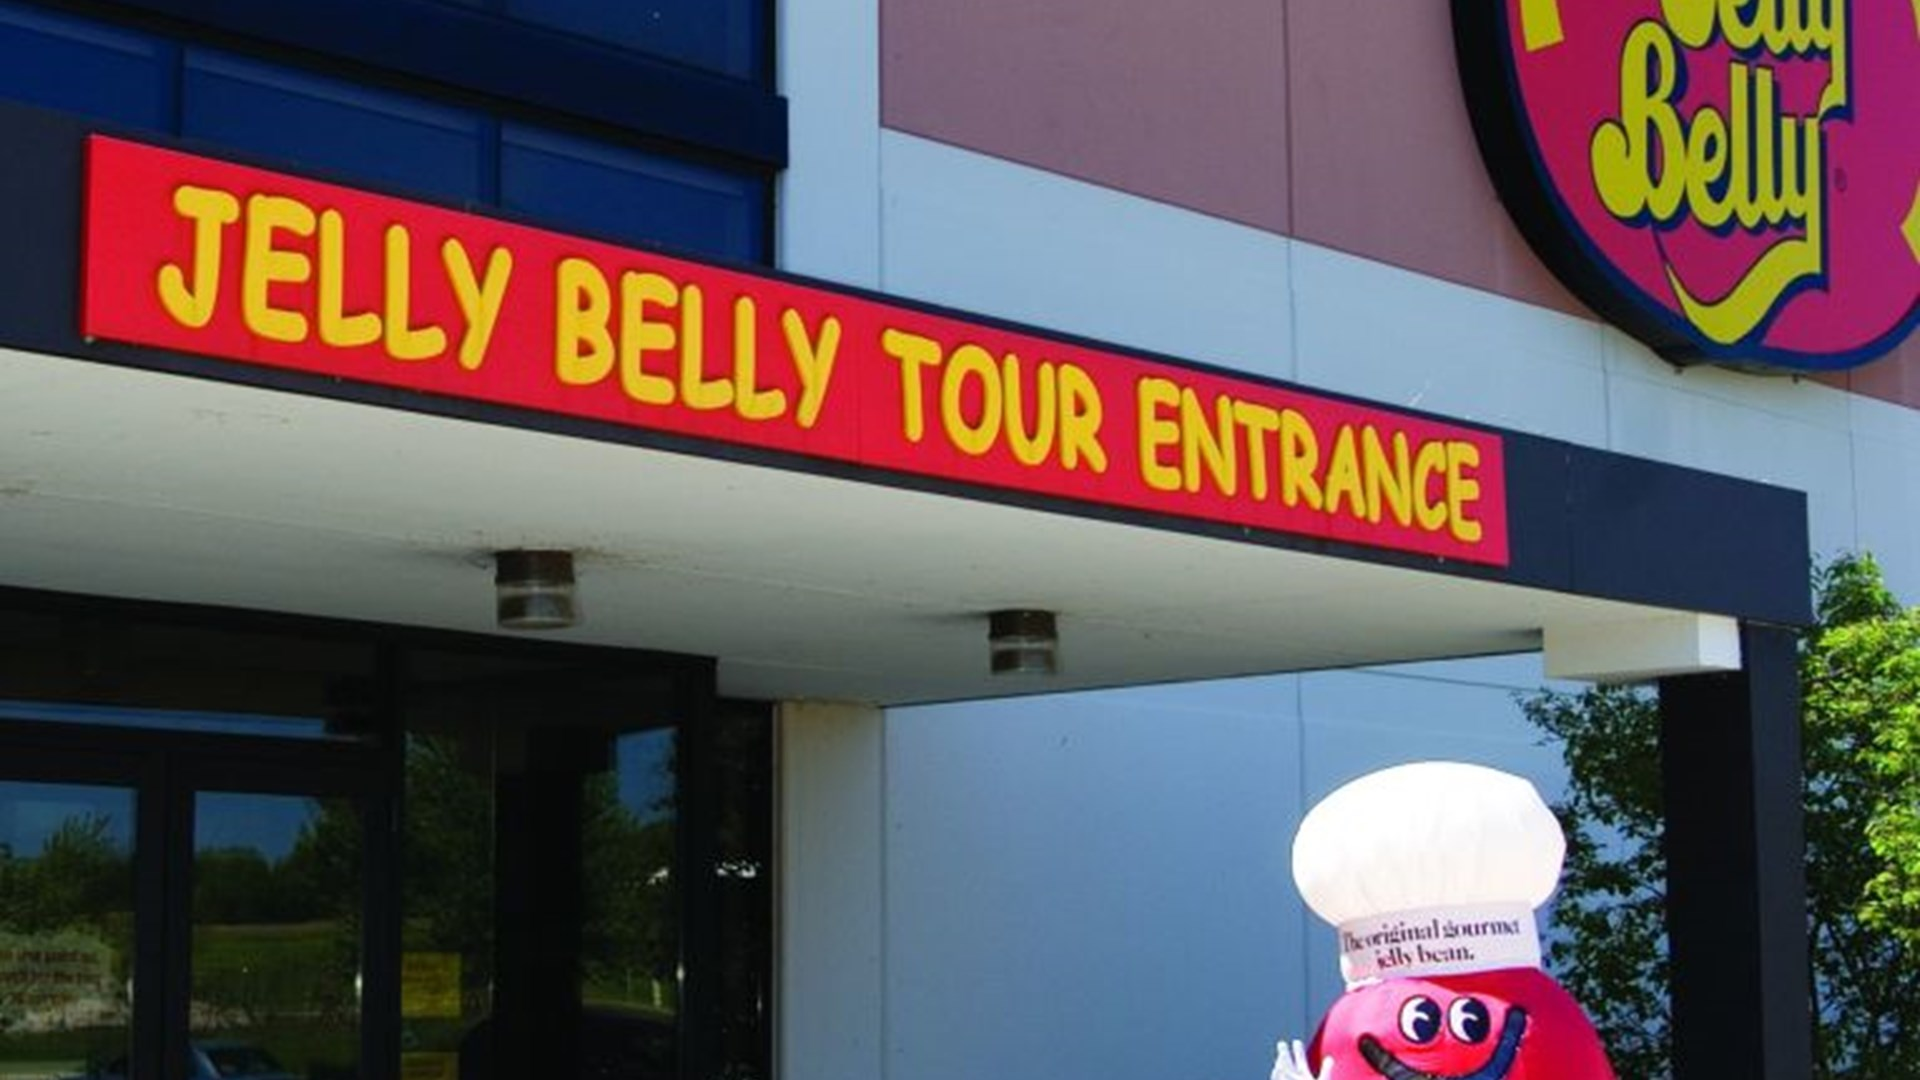 Mr. Jelly Belly at entrance